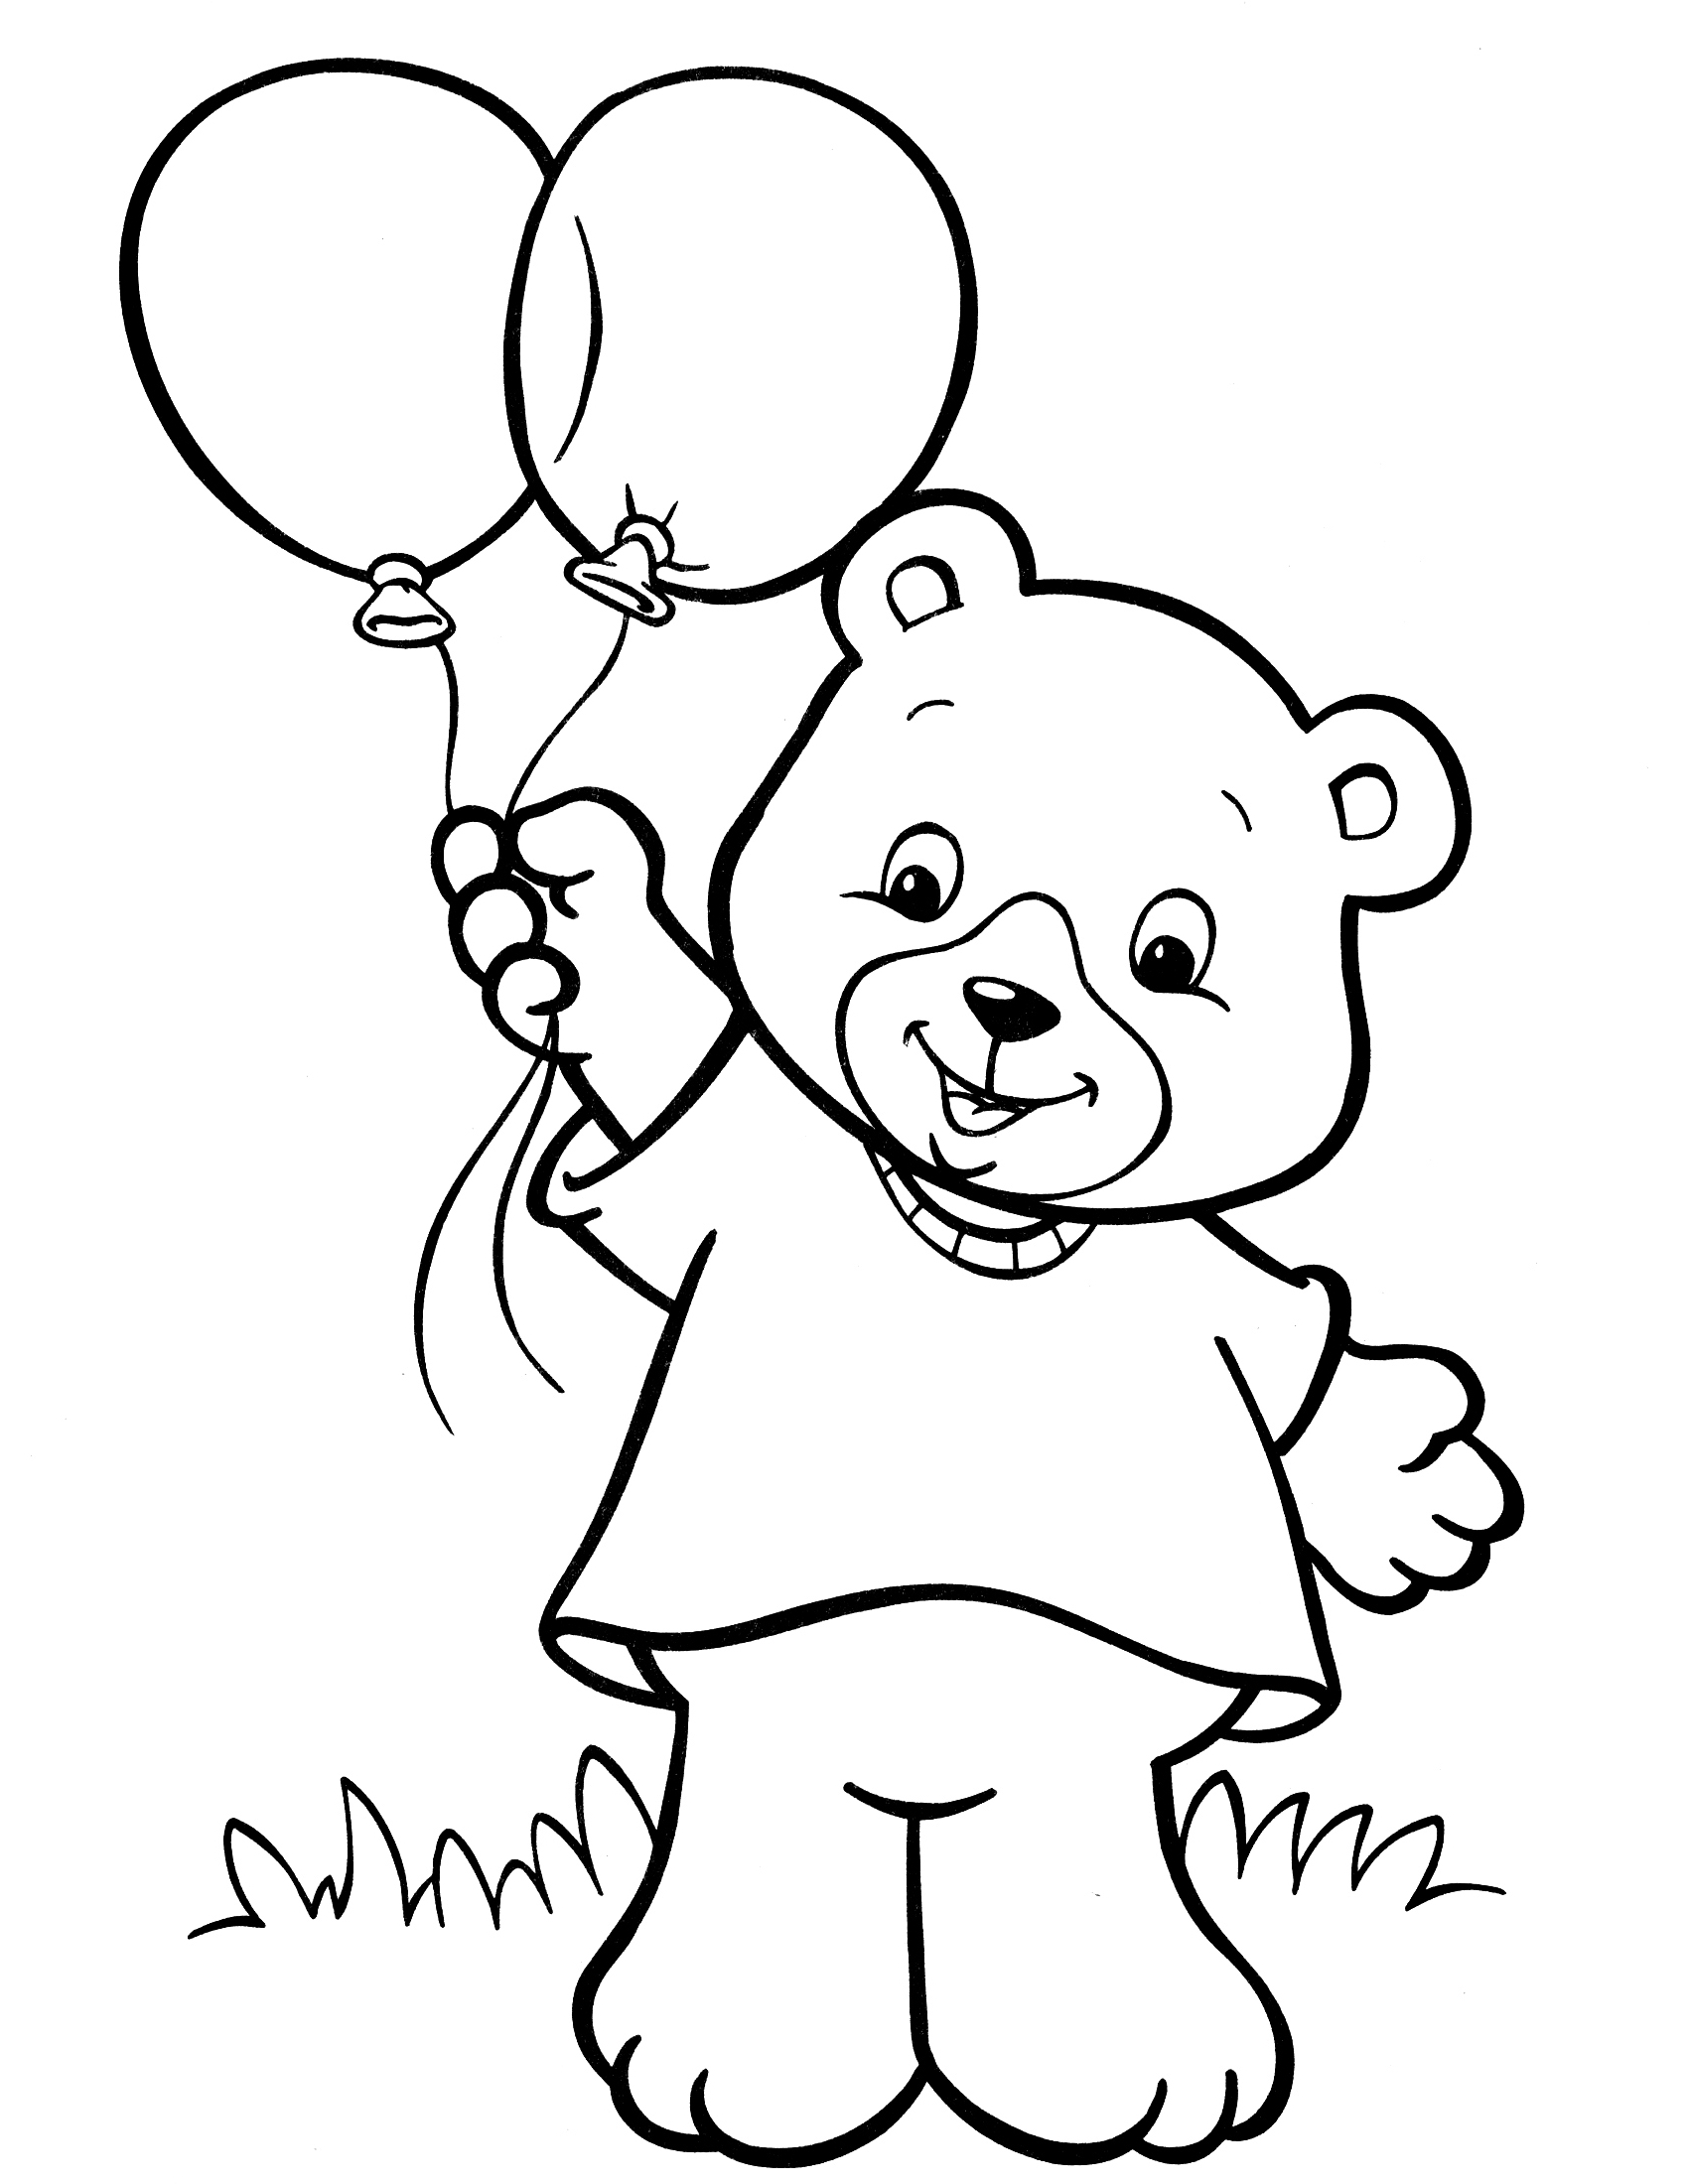 coloring pictures for 2 year olds simple coloring pages for 2 year olds at getcoloringscom pictures for 2 olds year coloring